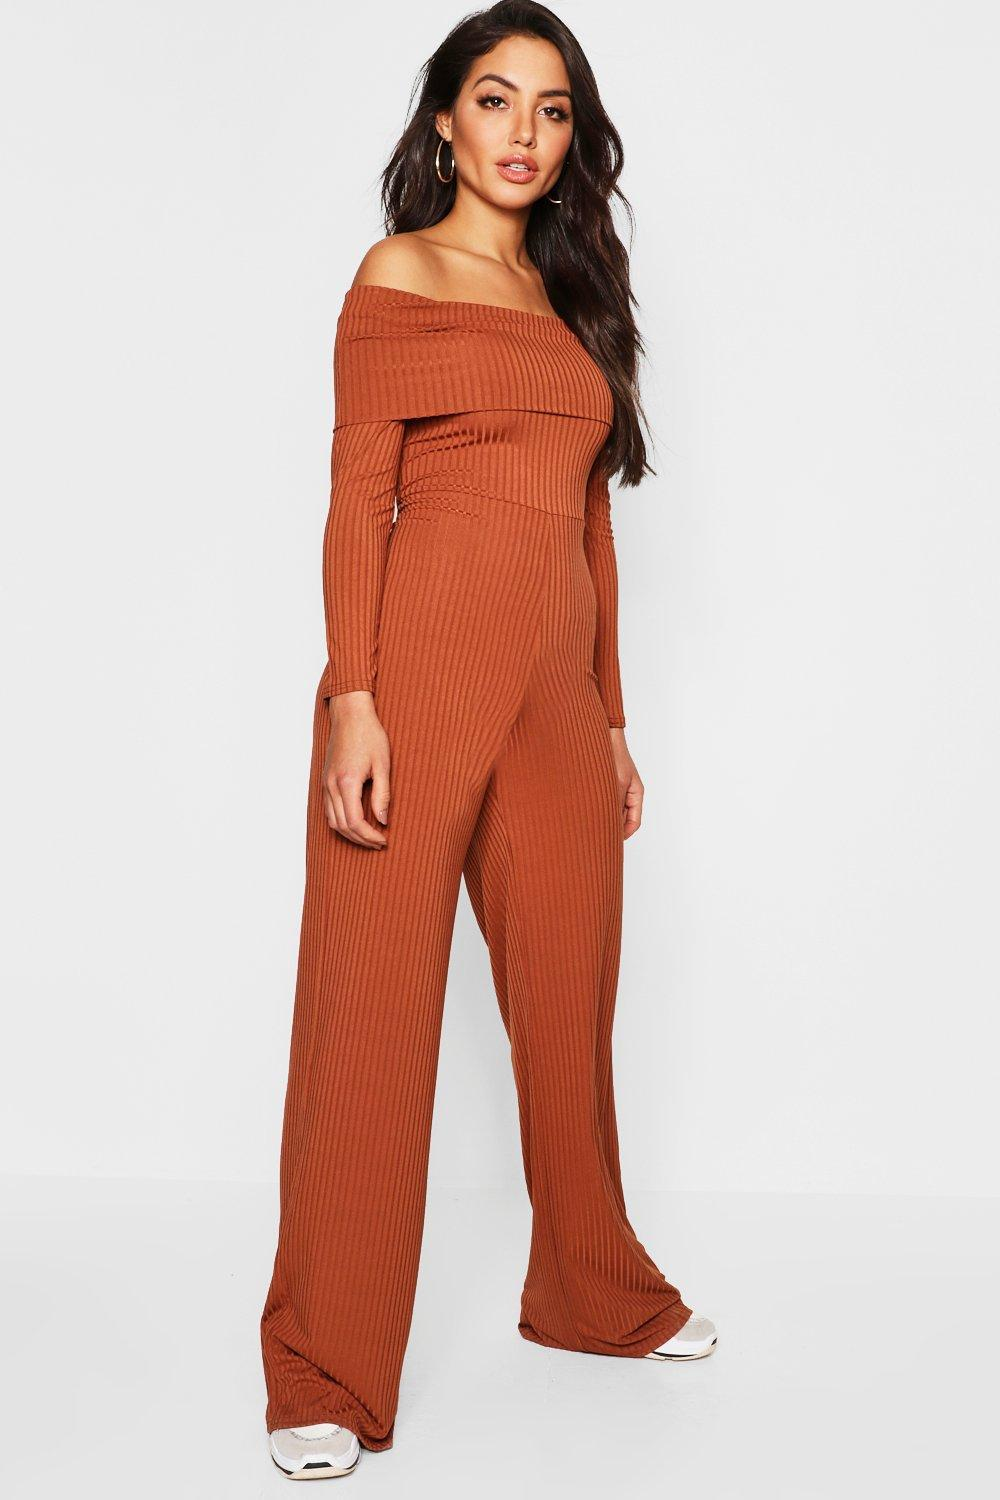 f9c4561b473 Boohoo Going Out Jumpsuits - Data Dynamic AG